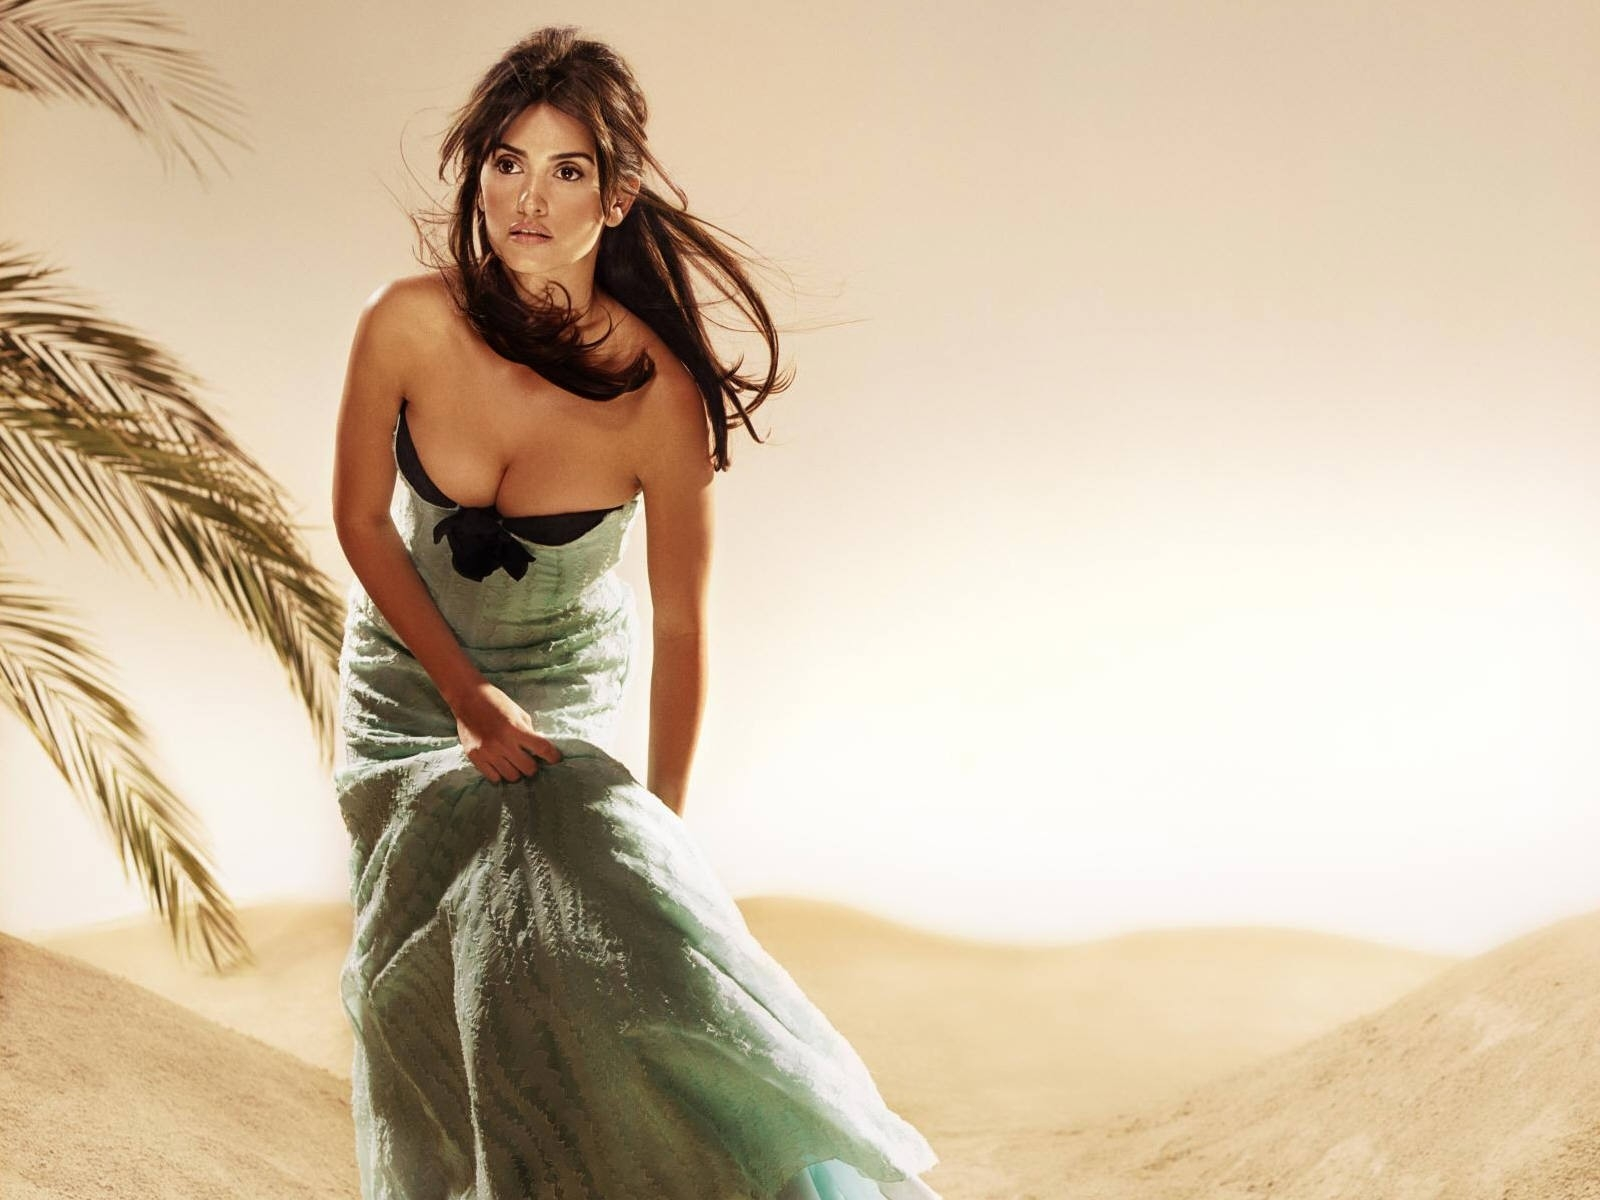 Wallpaper - una luminosa Penelope Cruz